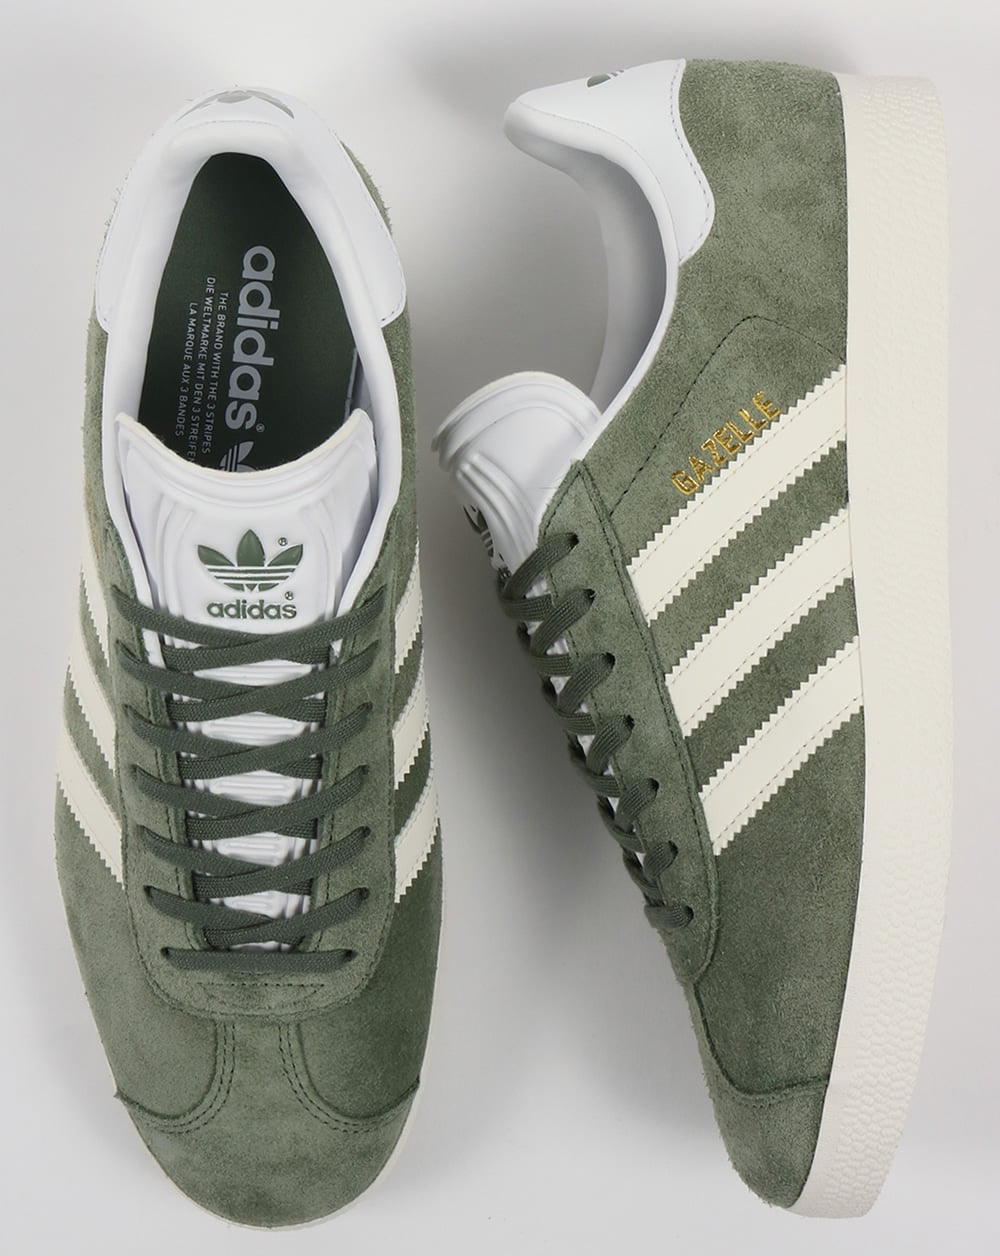 750b76e13526 Adidas Gazelle Trainers Trace Green Off White - Trainers from 80s ...